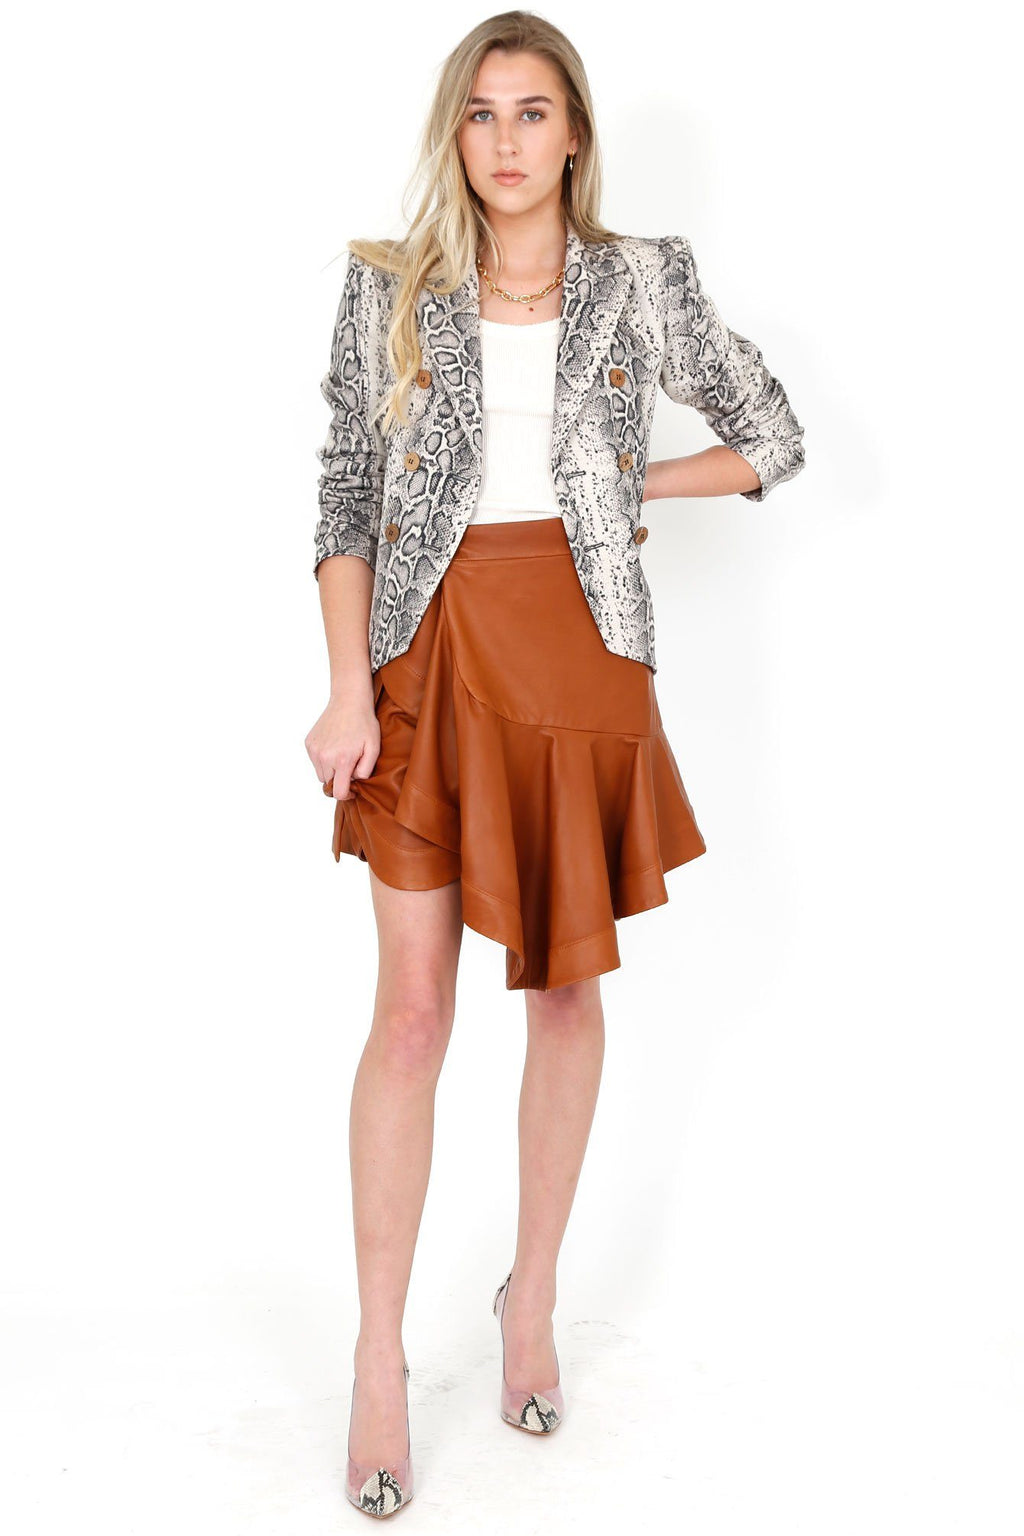 A.L.C. | Amalie Leather Skirt - Spiced Rum